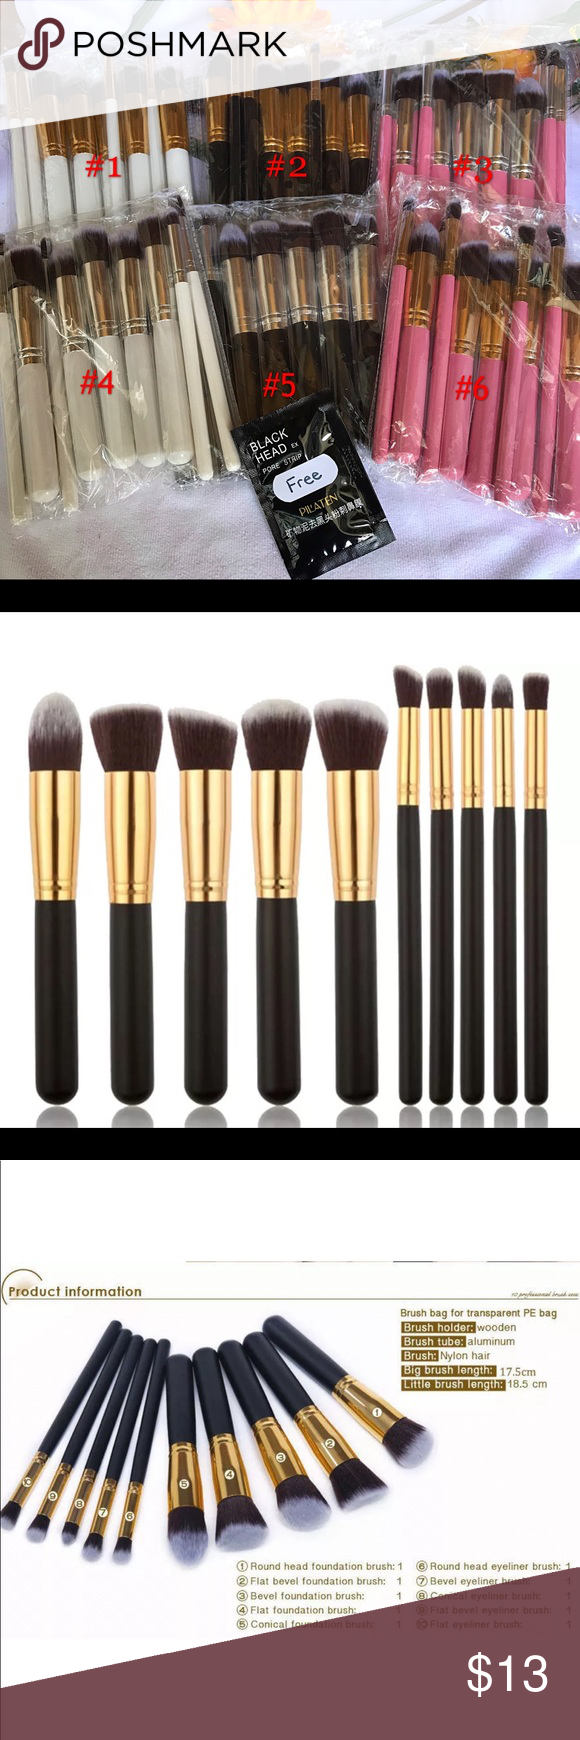 10pcs Pro Makeup Brushes Set 1.Precision face brush 2.Flat